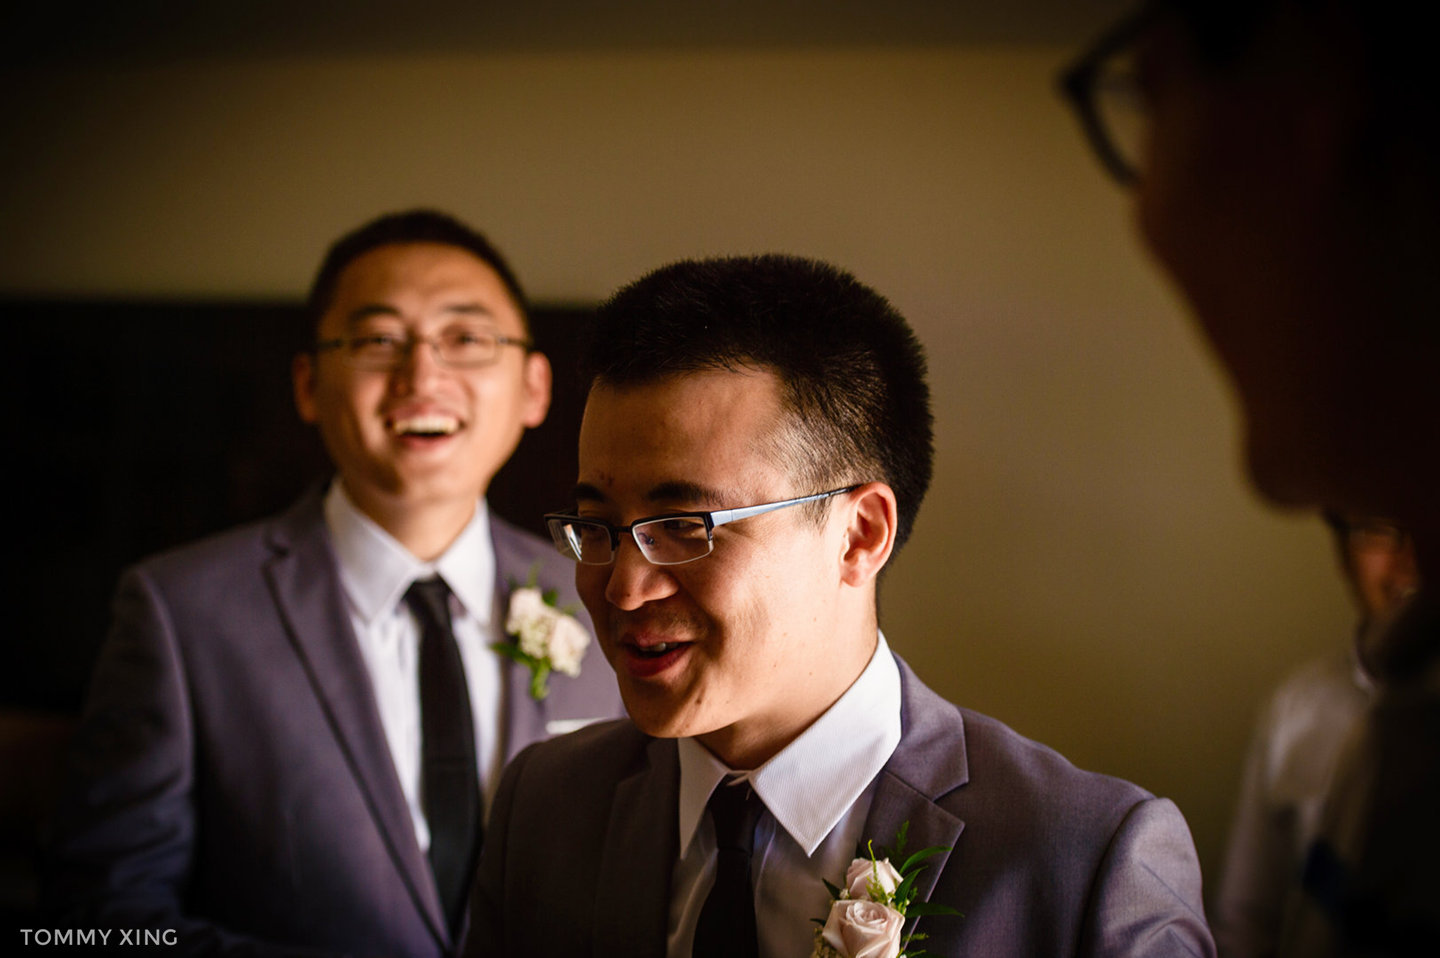 Paradise Point Resort Wedding Xiaolu & Bin San Diego 圣地亚哥婚礼摄影跟拍 Tommy Xing Photography 洛杉矶婚礼婚纱照摄影师 020.jpg